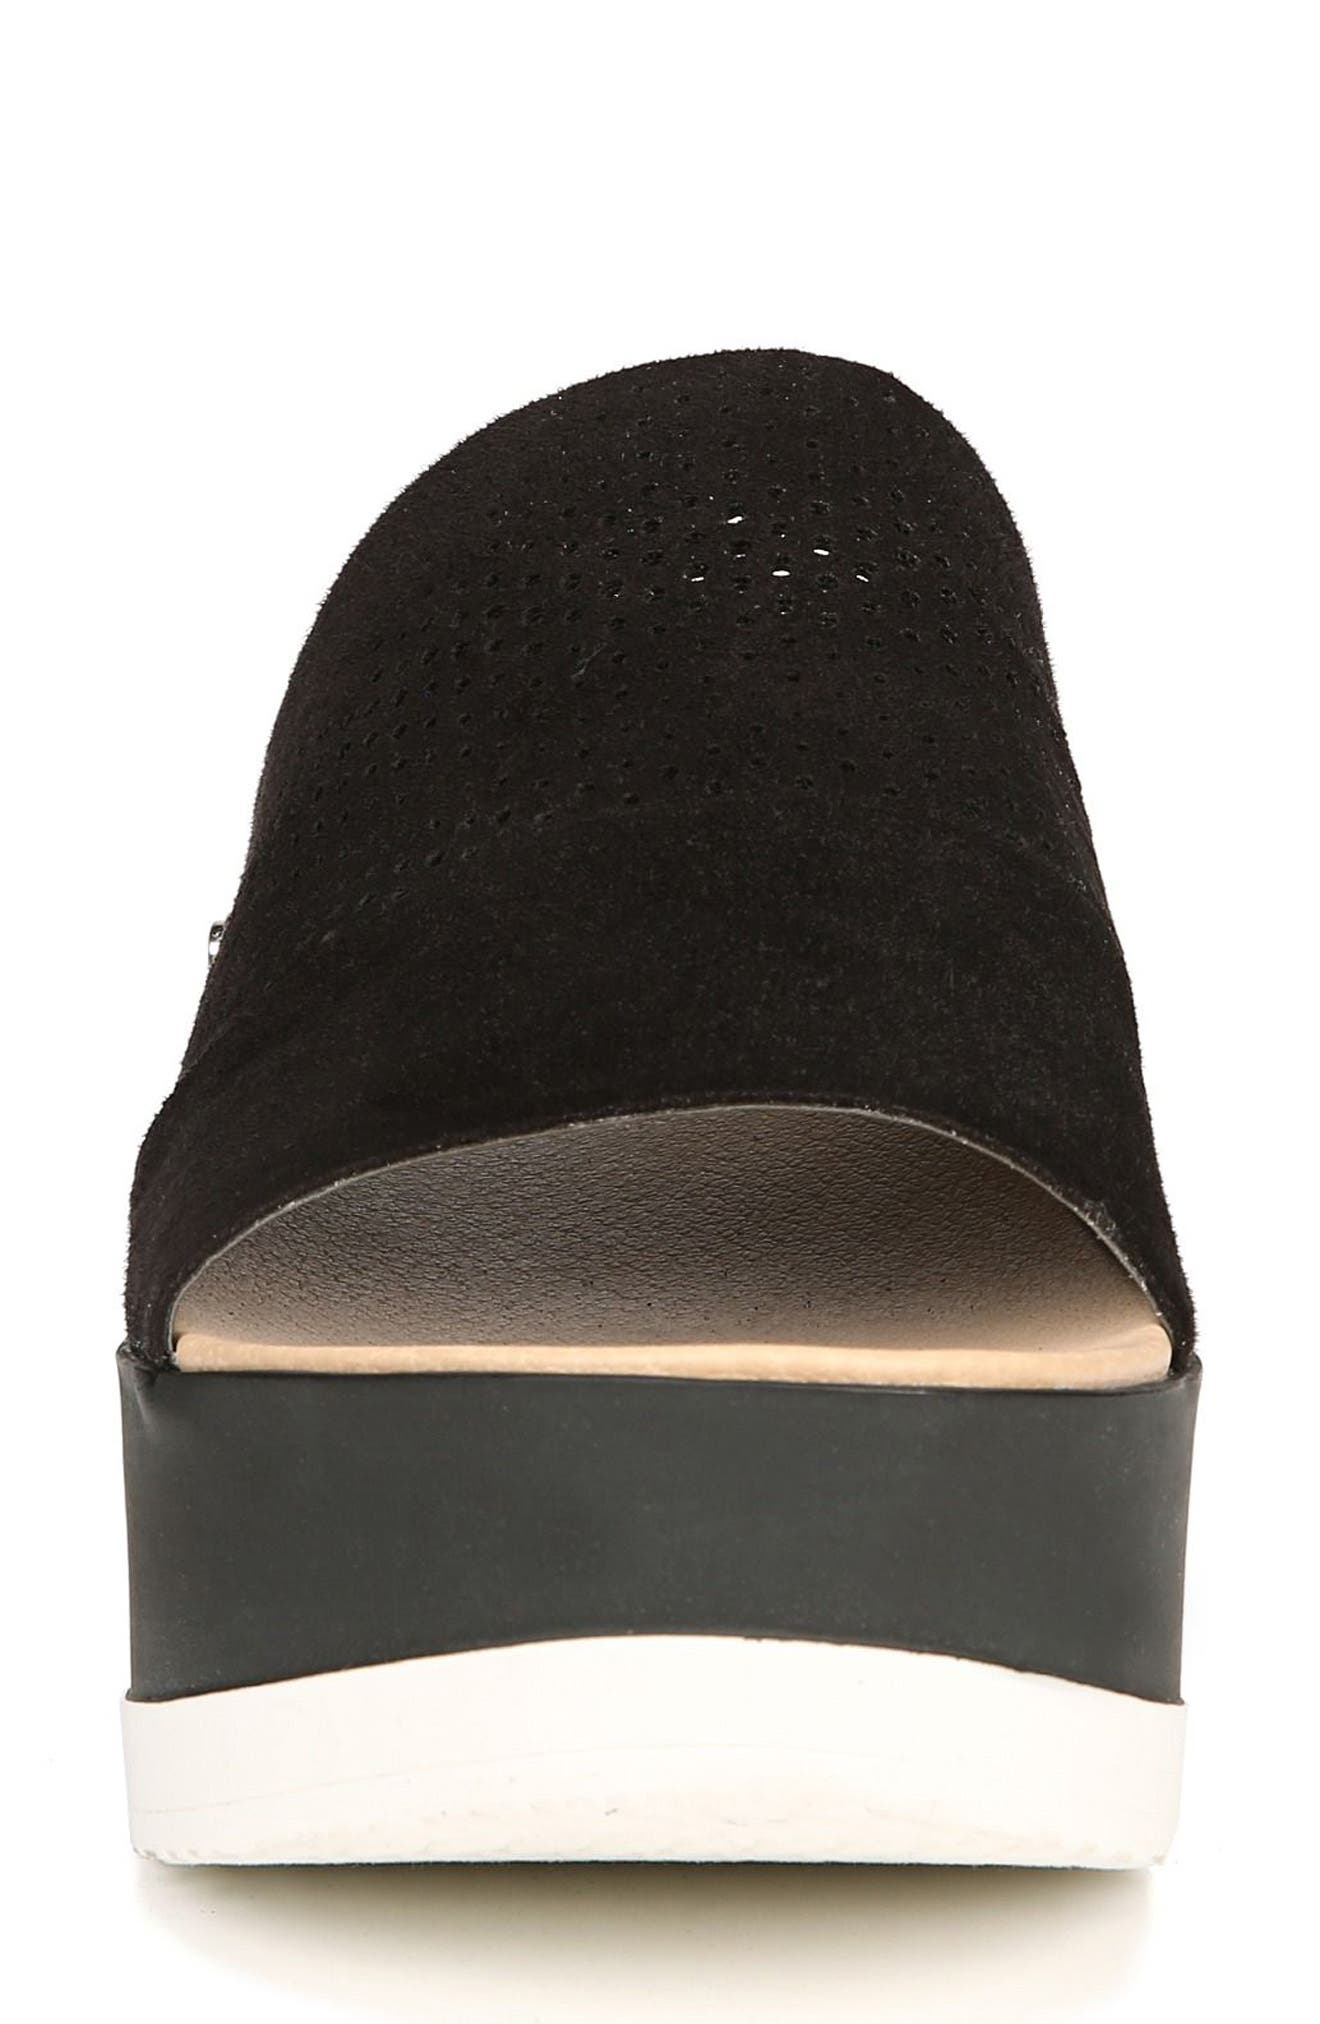 Collins Platform Sandal,                             Alternate thumbnail 4, color,                             BLACK FABRIC